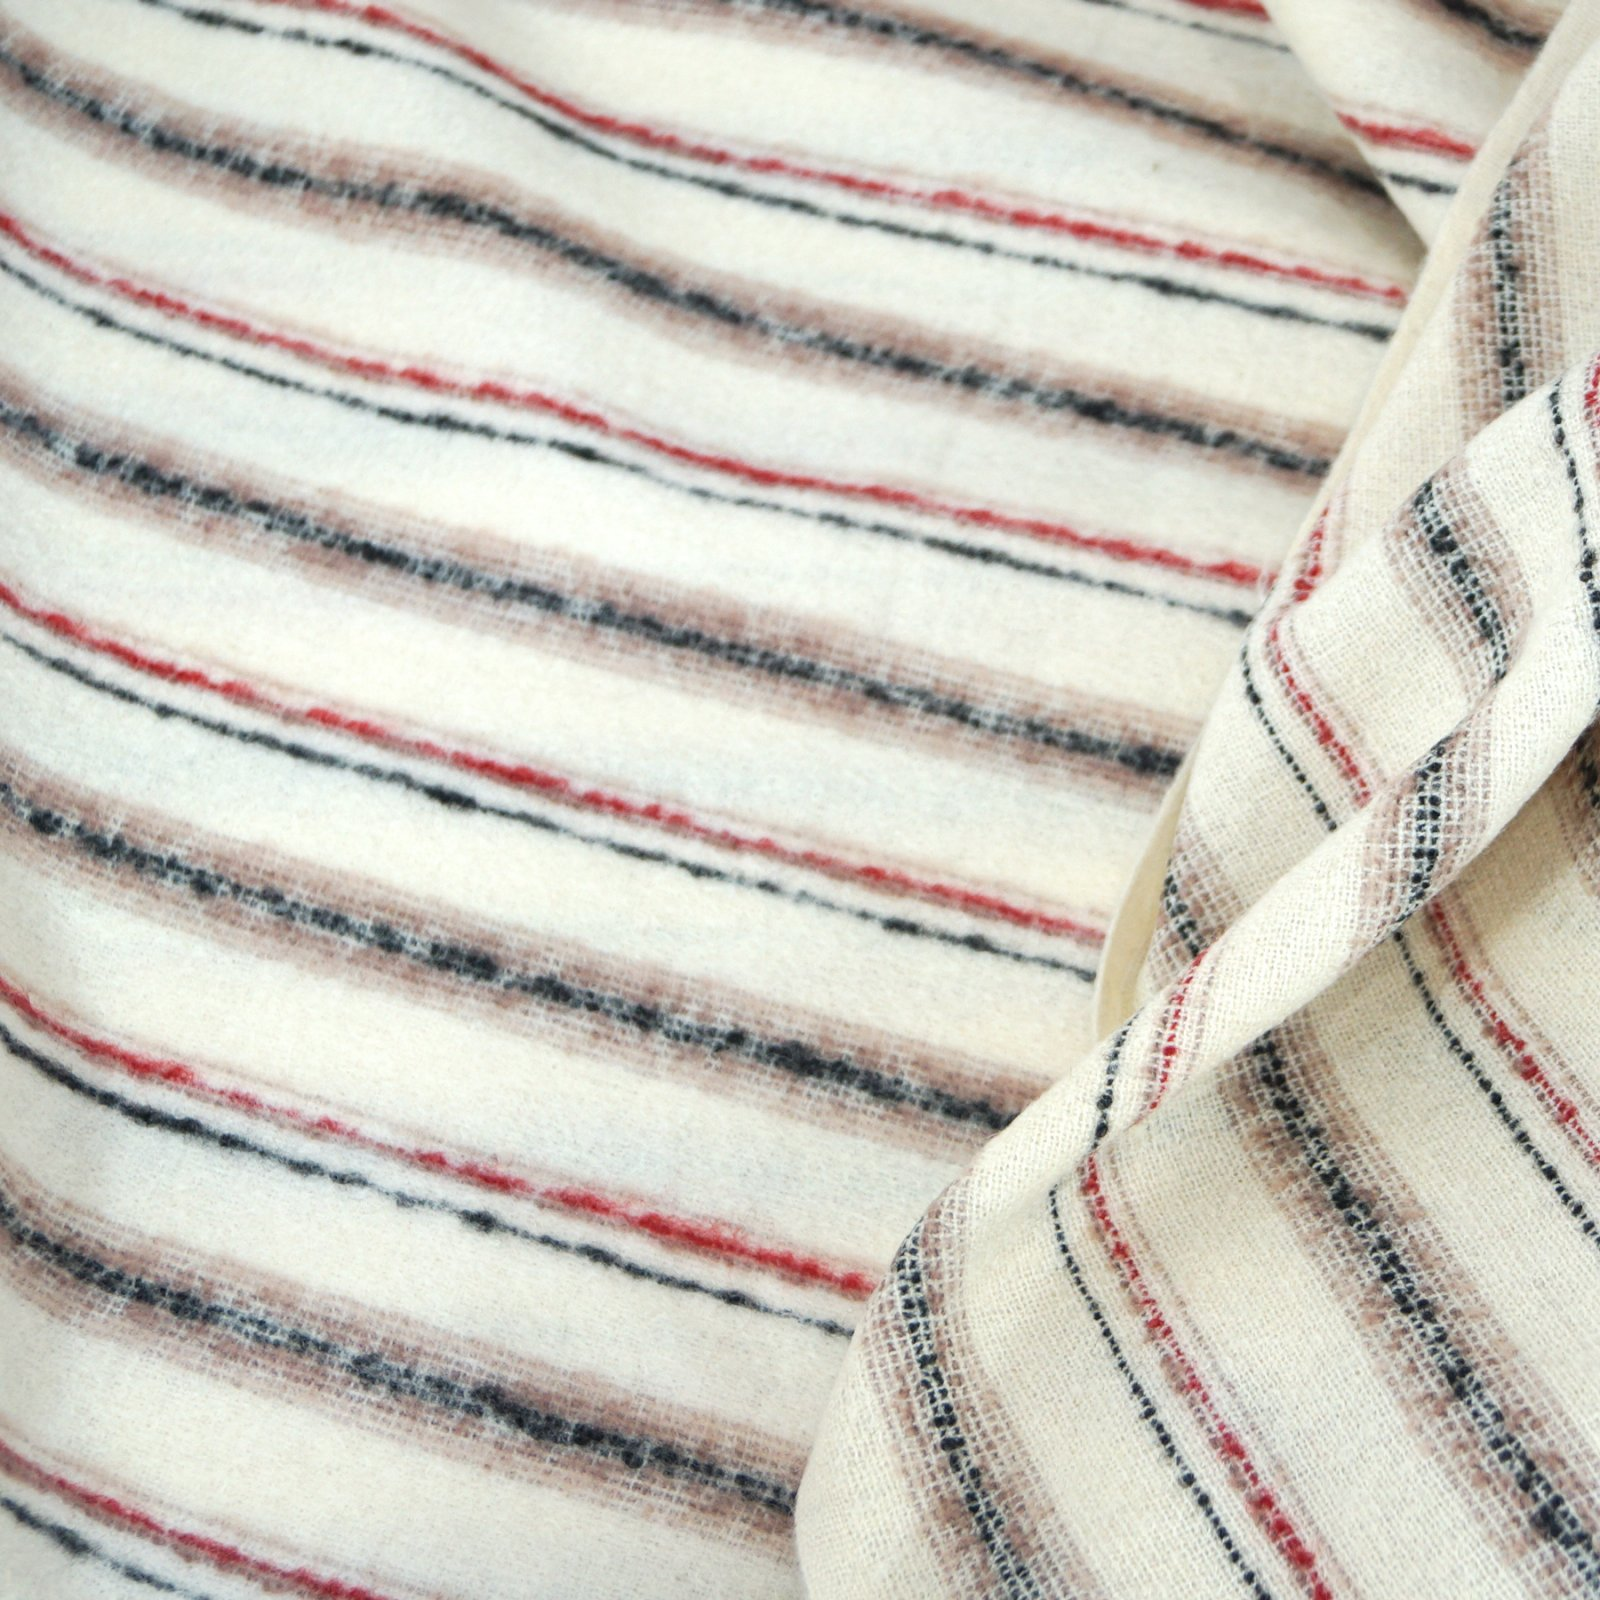 Wool - Cream with Black, Taupe, & Crimson Stripe